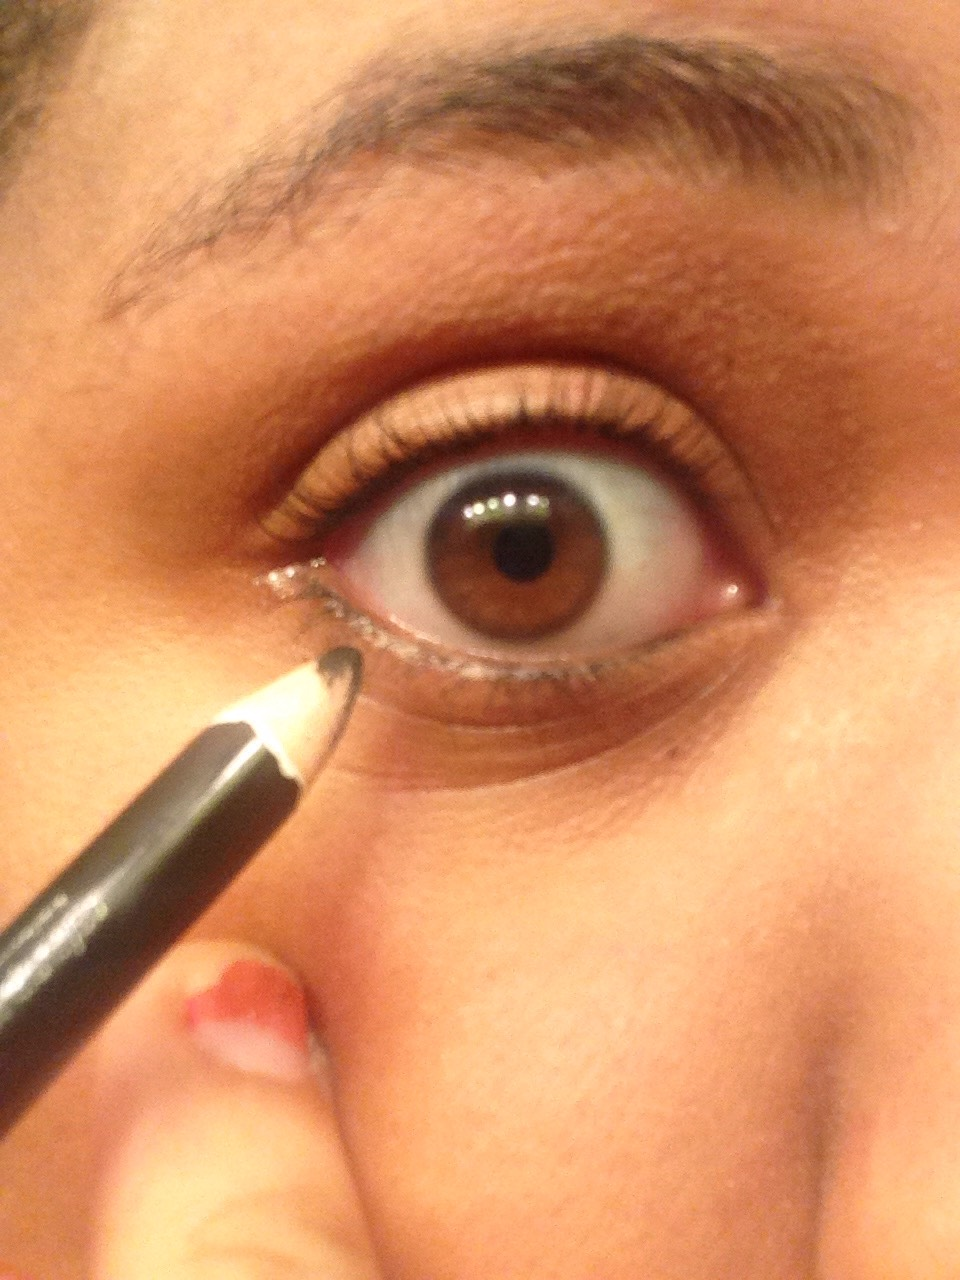 use a pencil eyeliner and go on your waterline, as far up as your tear duct.